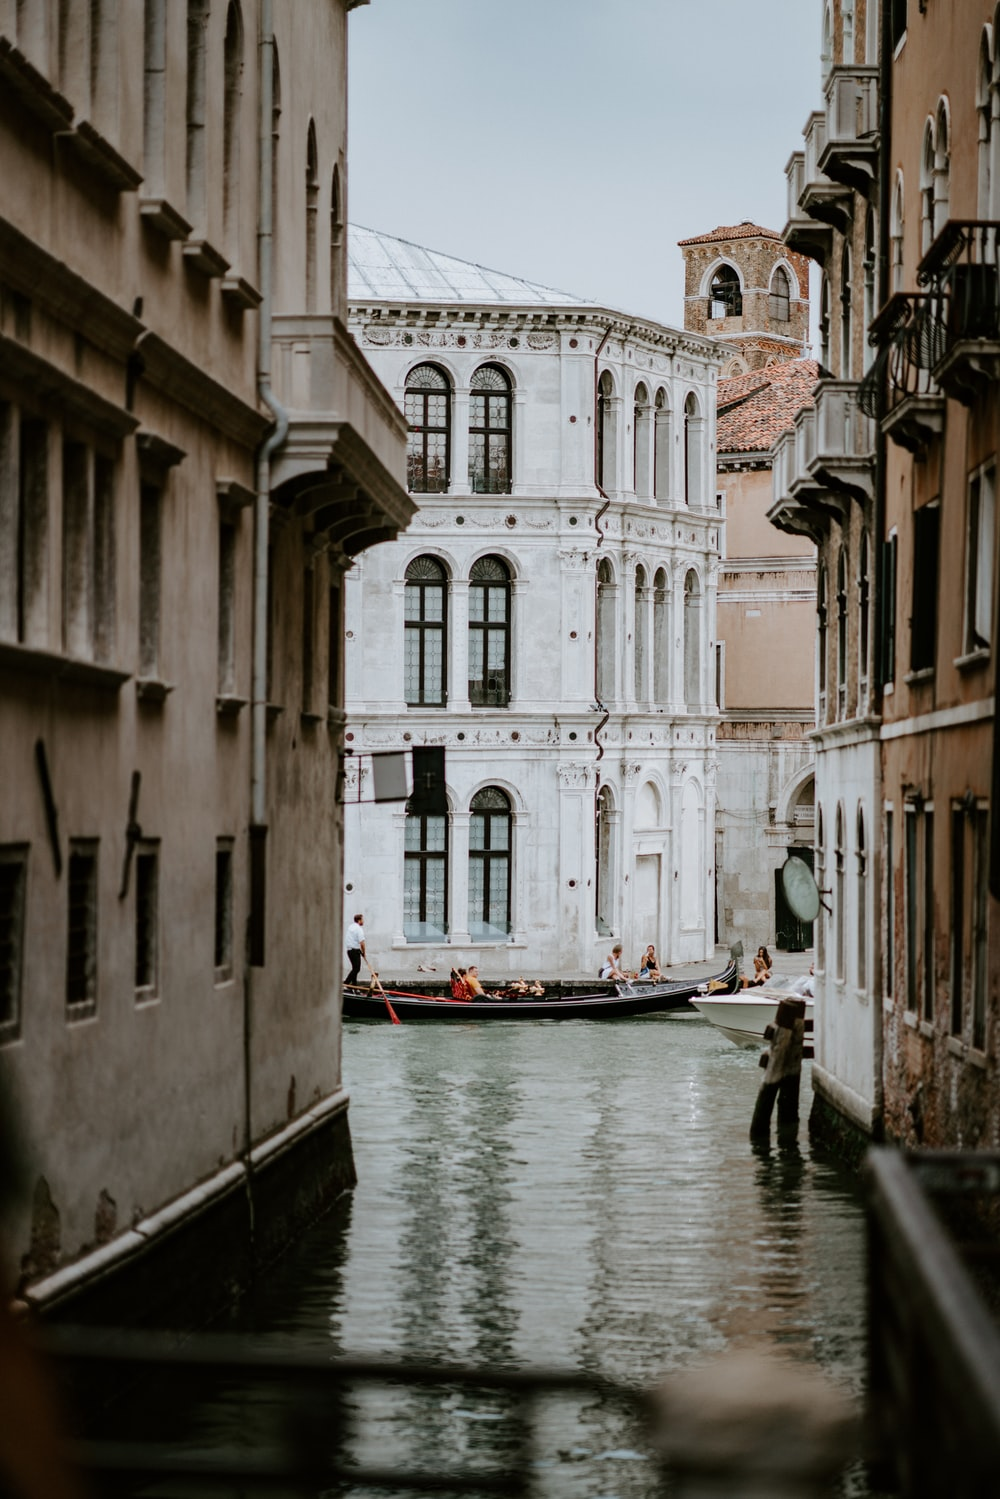 canal between beige and white concrete buildings at daytime